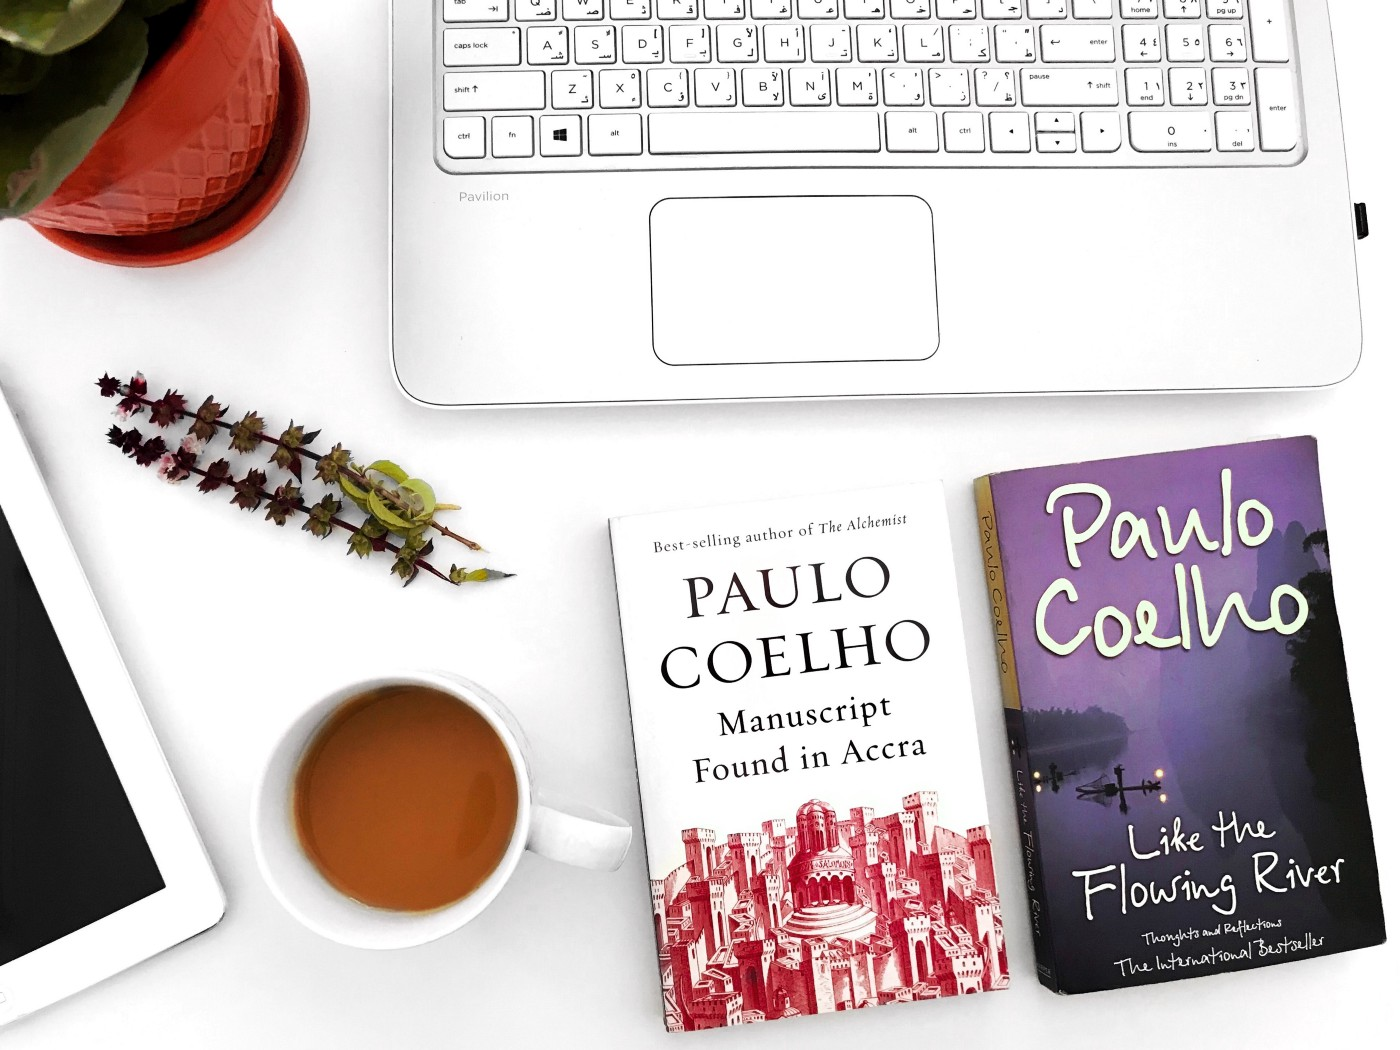 Two Paulo Coelho books with a laptop on a table.